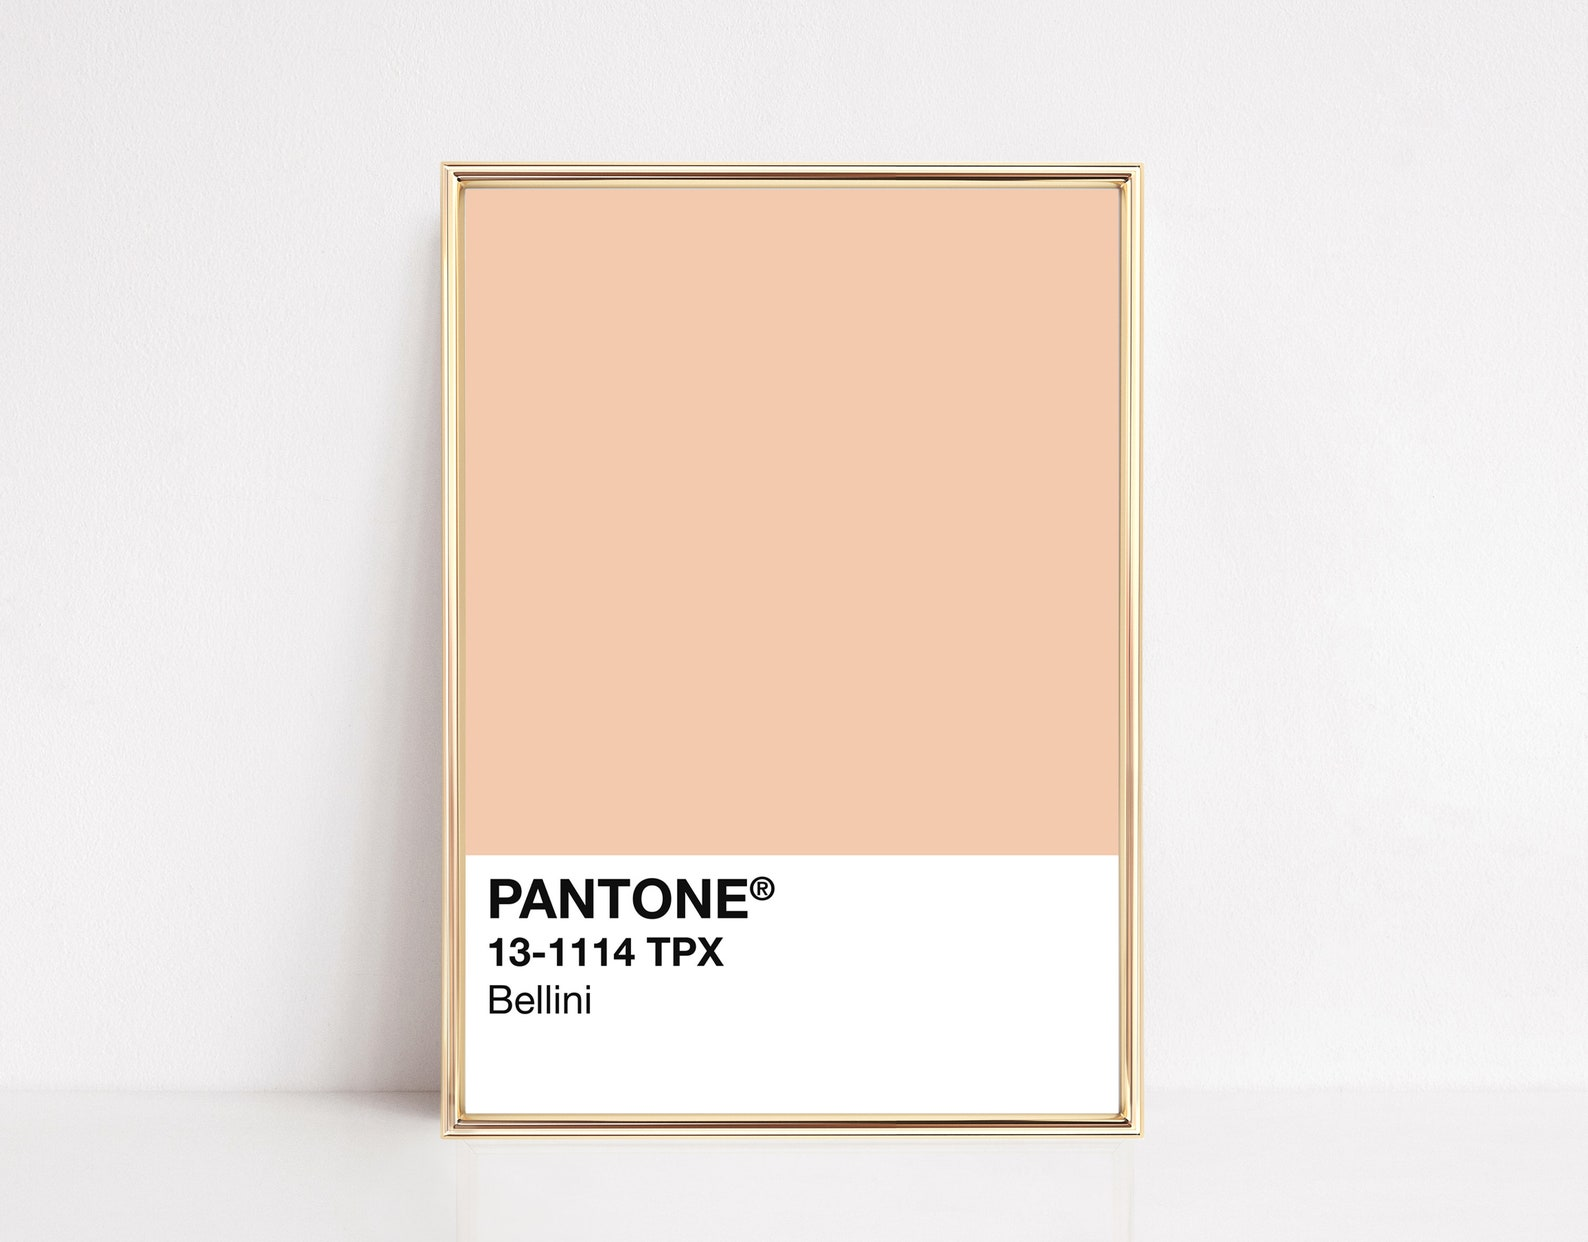 The Road Work Fetish On Pantone Canvas Gallery